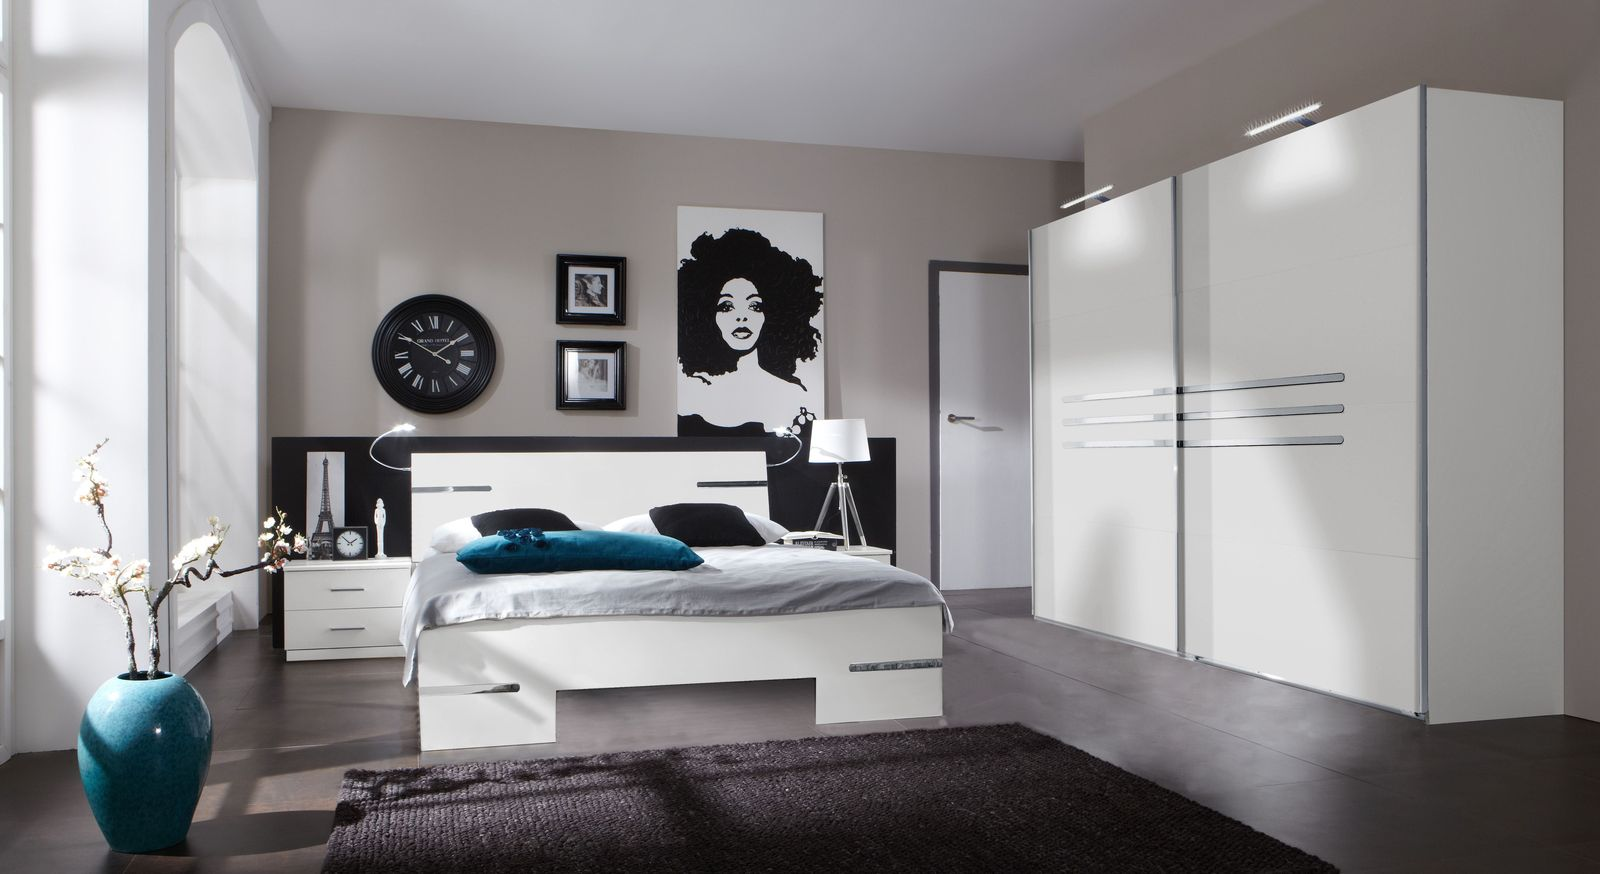 einrichtung modern schlafzimmer schlafzimmer komplett kolonial perkal bettw sche was ist das. Black Bedroom Furniture Sets. Home Design Ideas